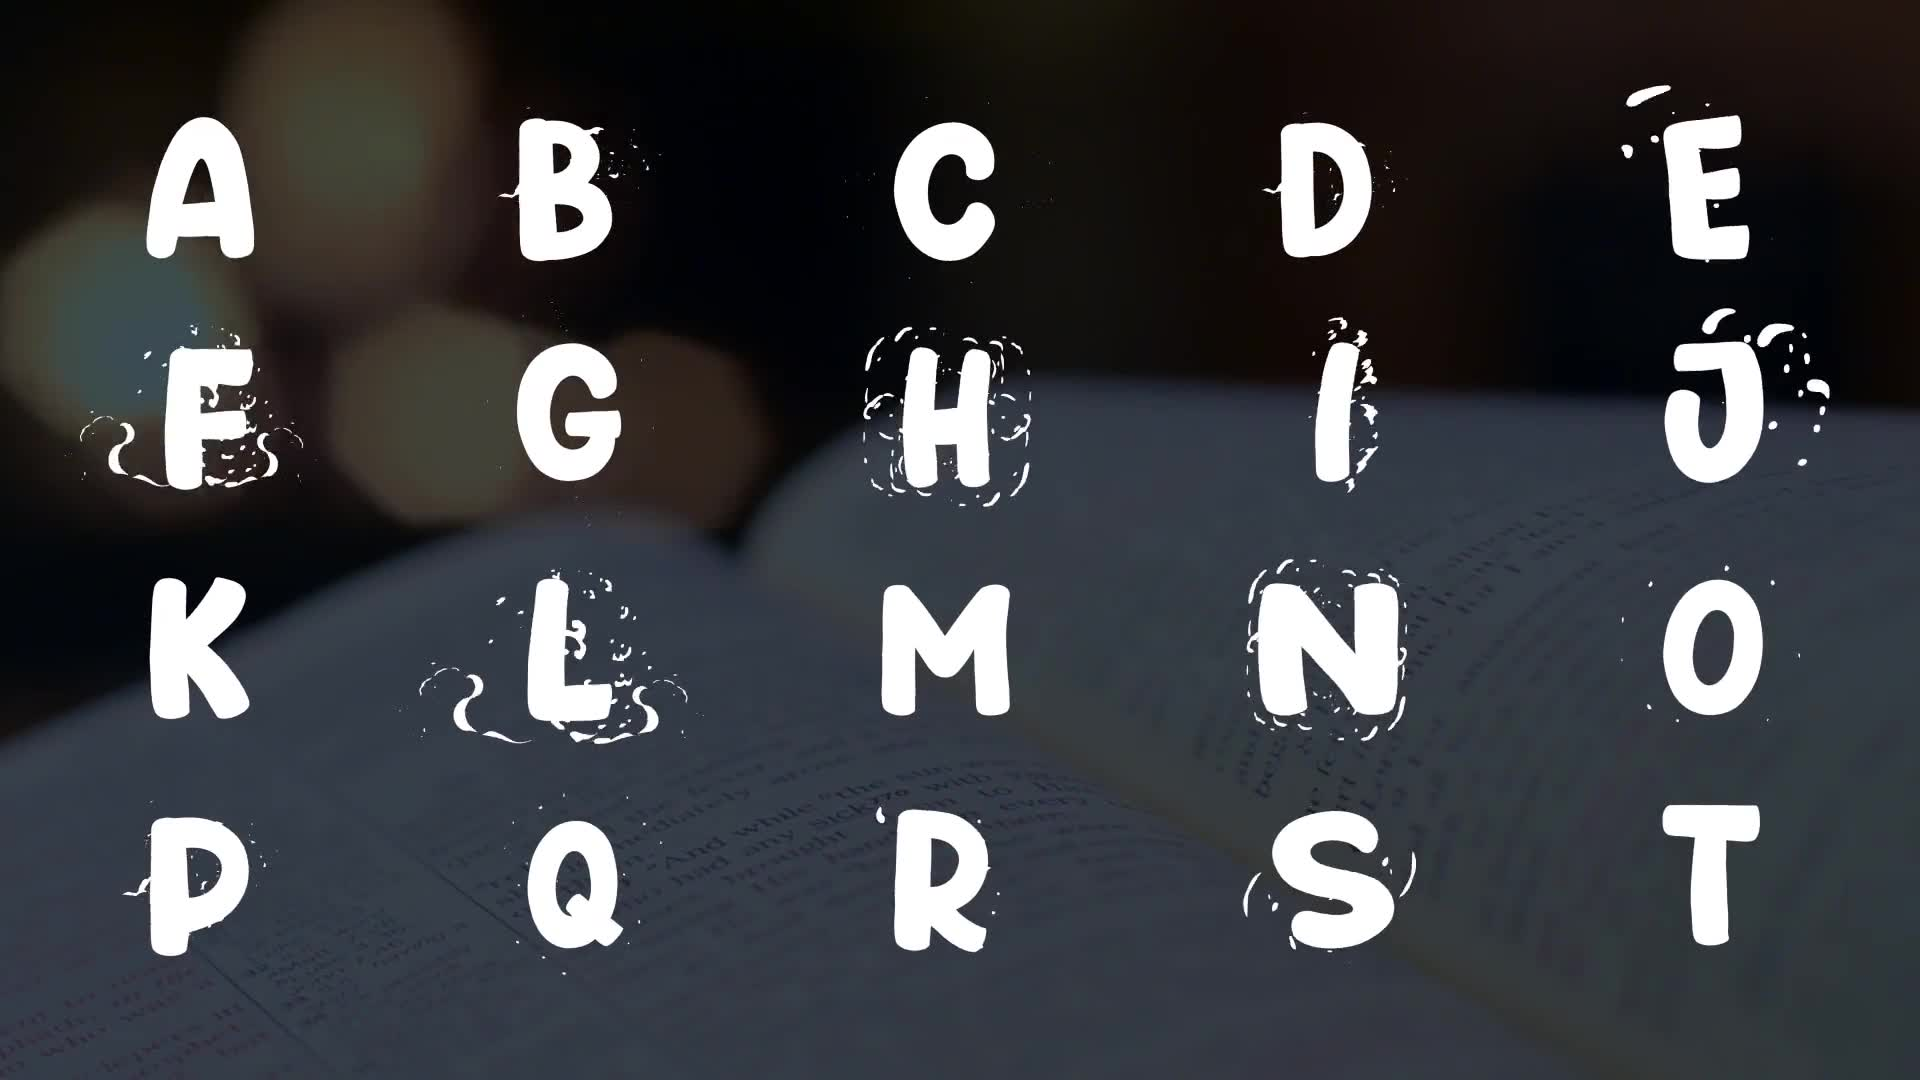 Cartoon Alphabet | After Effects Videohive 25622907 After Effects Image 2